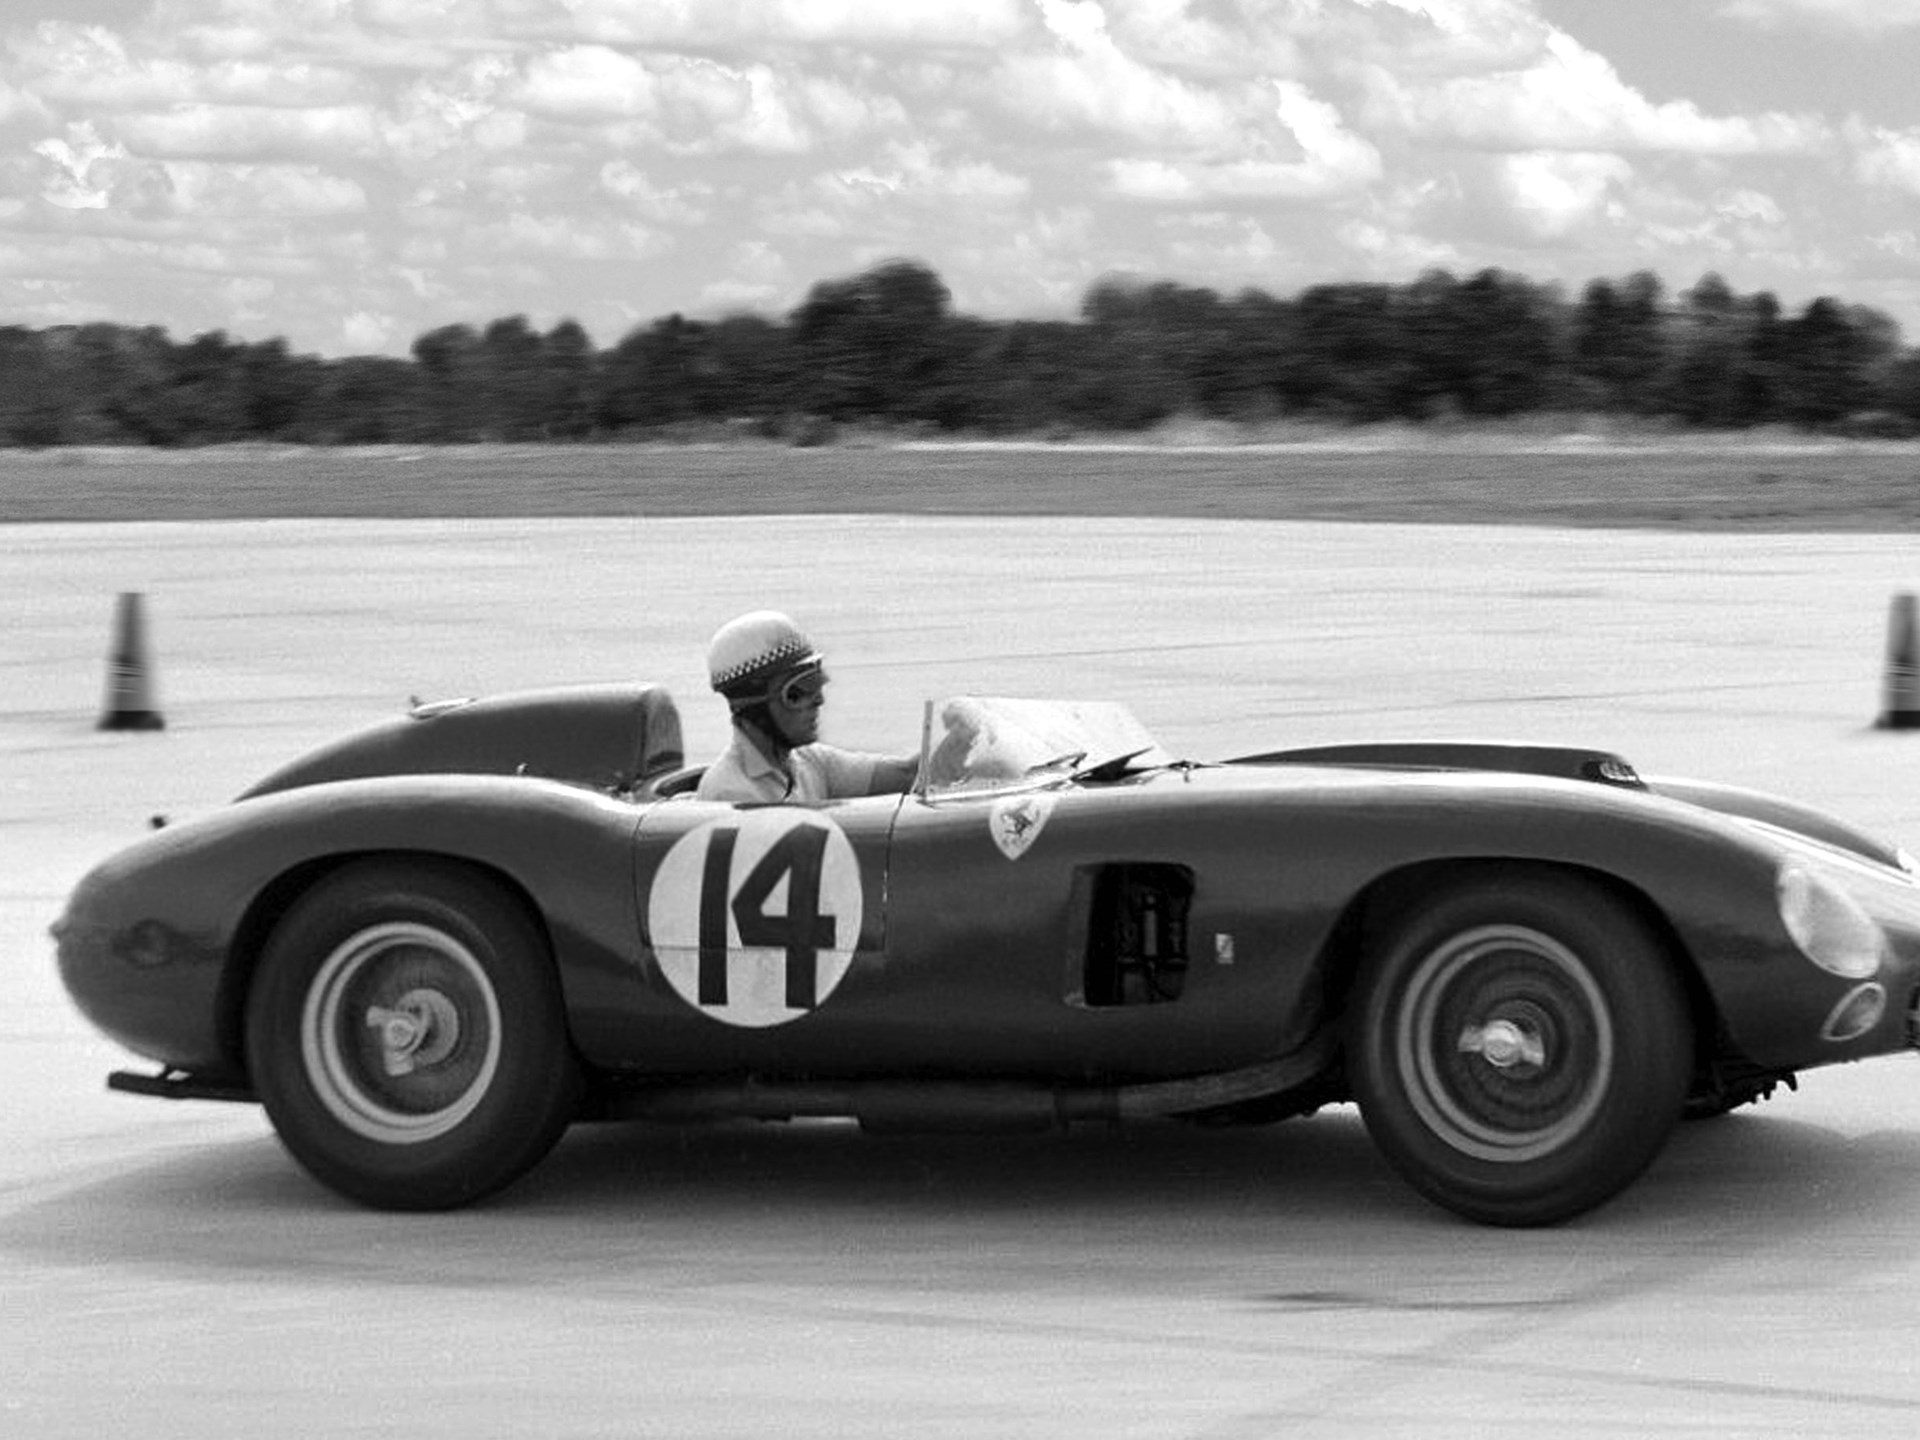 Chassis no. 0628 as seen at the 1957 12 Hours of Sebring.